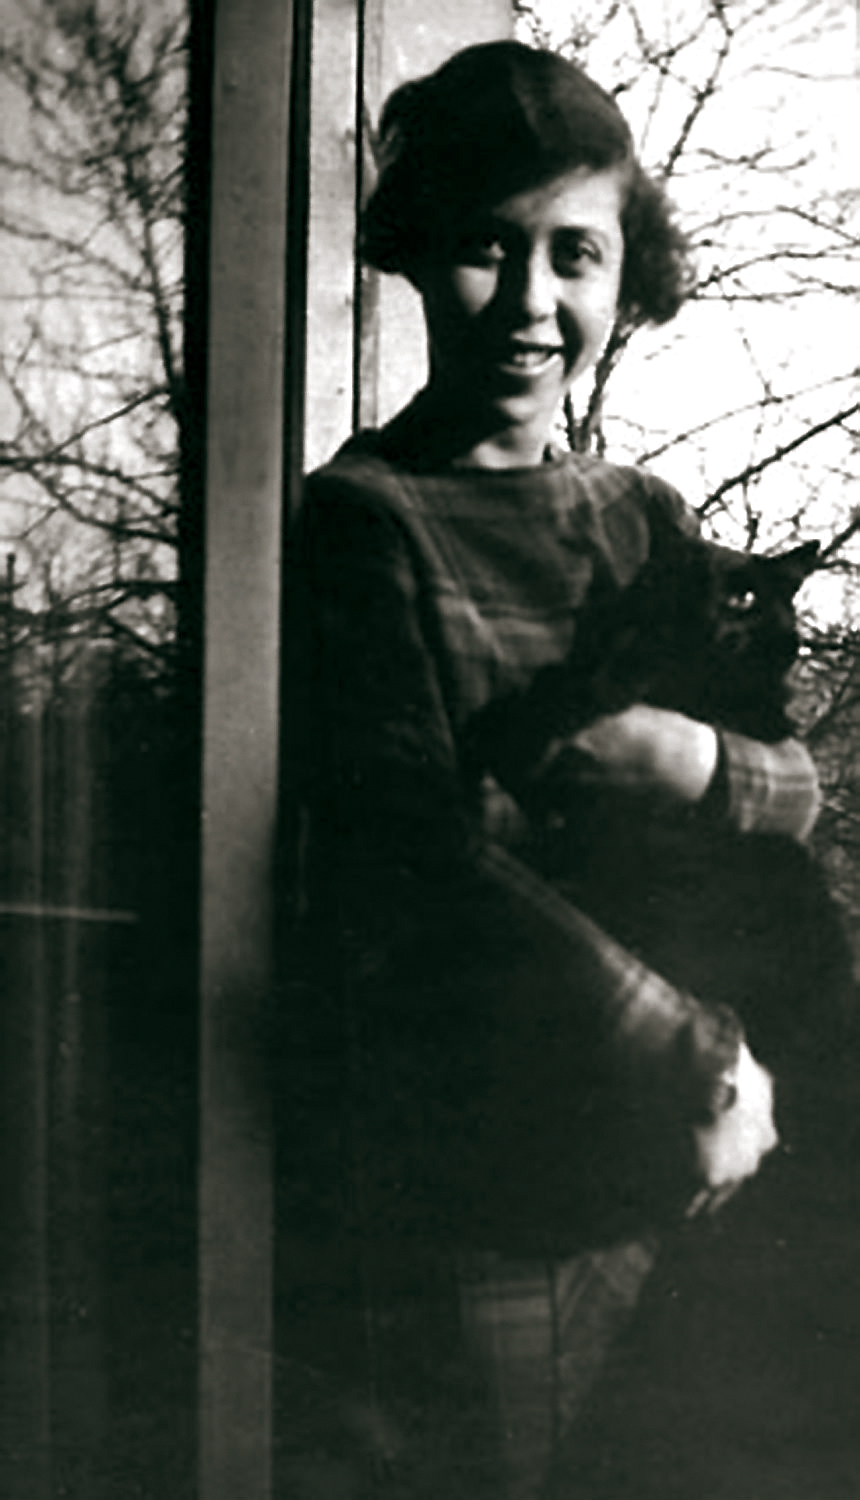 Irène Némirovsky at the age of 25 years old